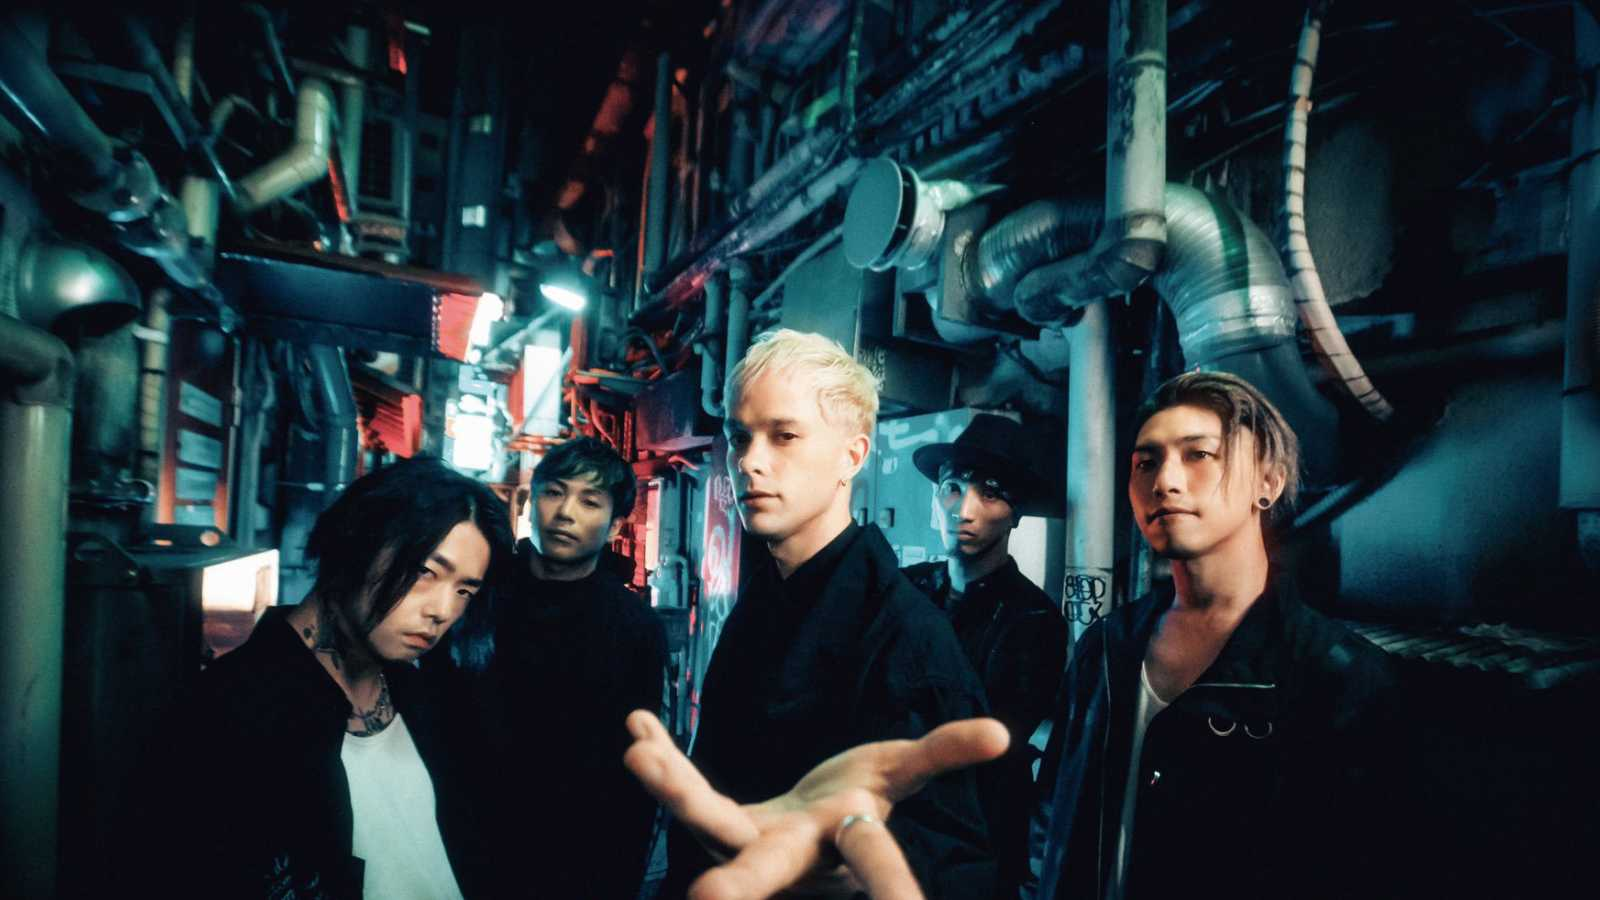 New Album from coldrain © coldrain. All rights reserved.